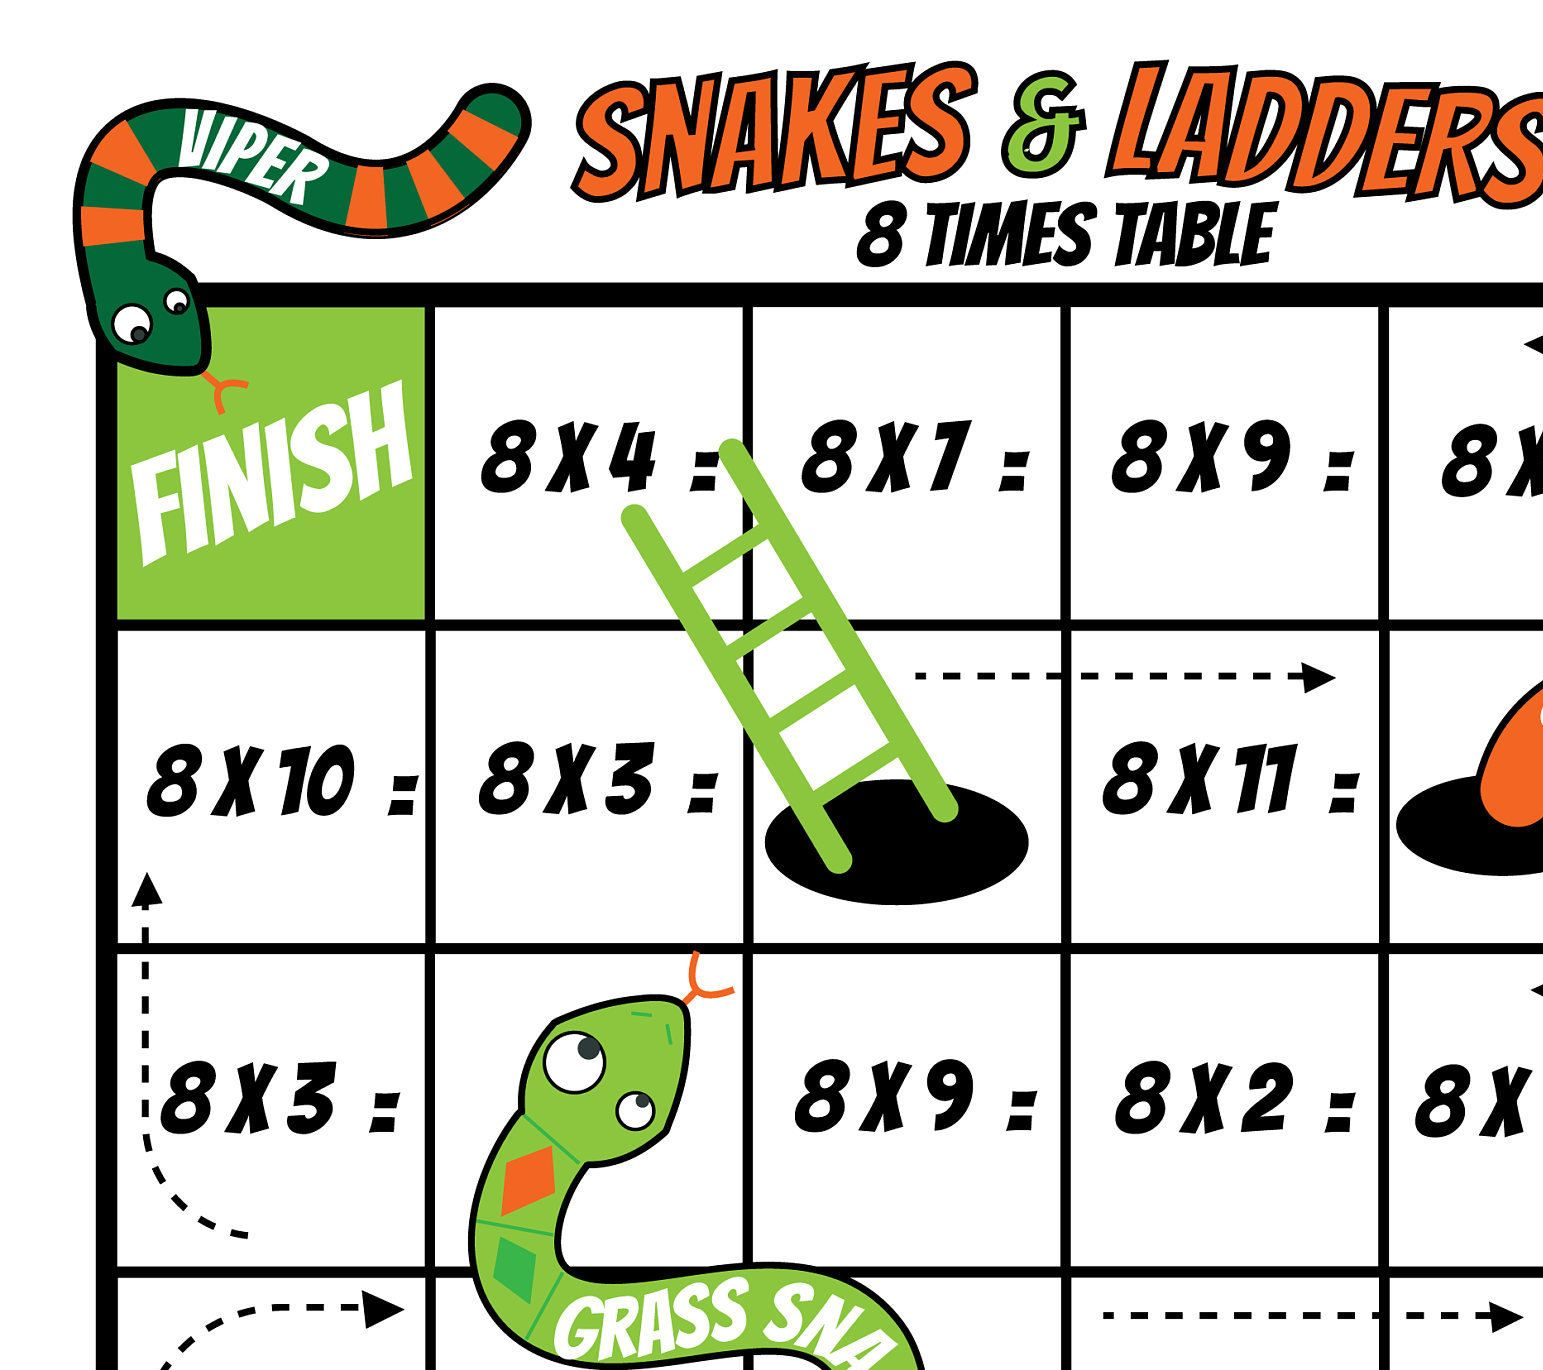 Snakes And Ladder 8 Times Table Board Game Kids Printable